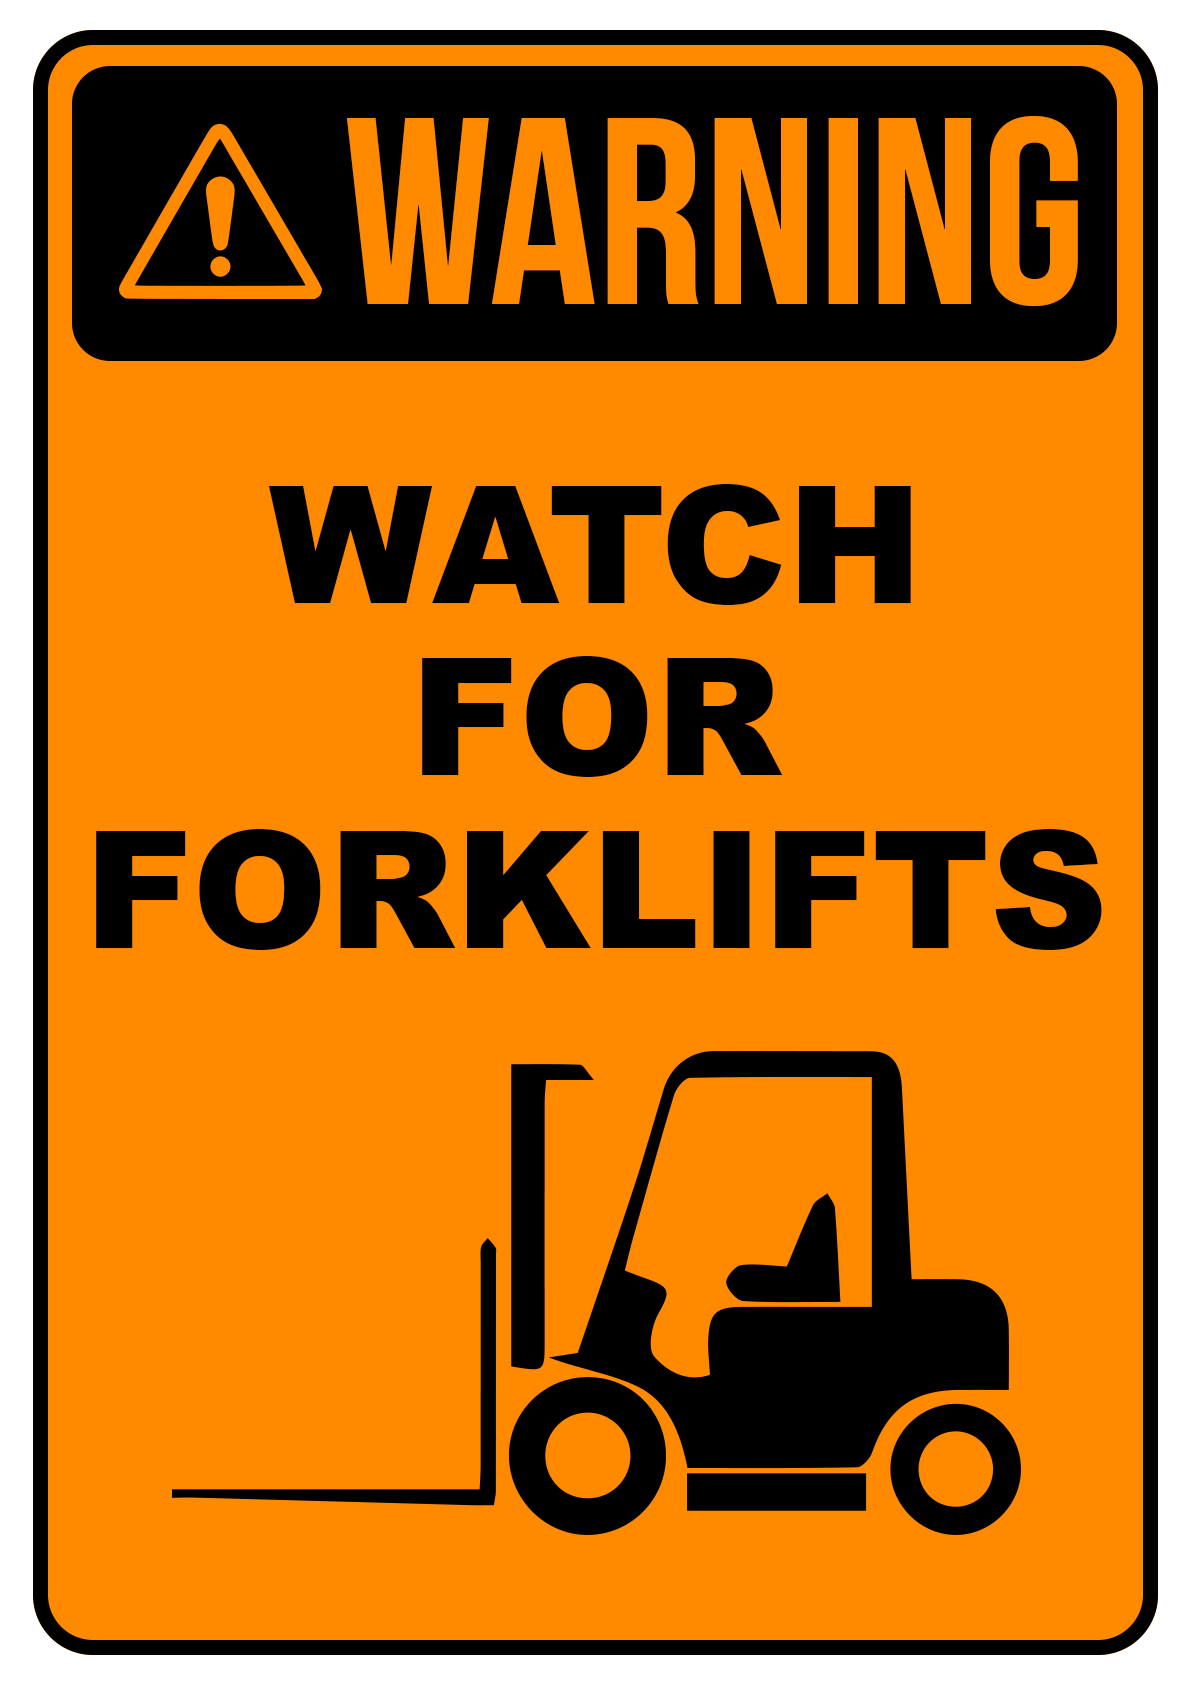 Watch For Forklift